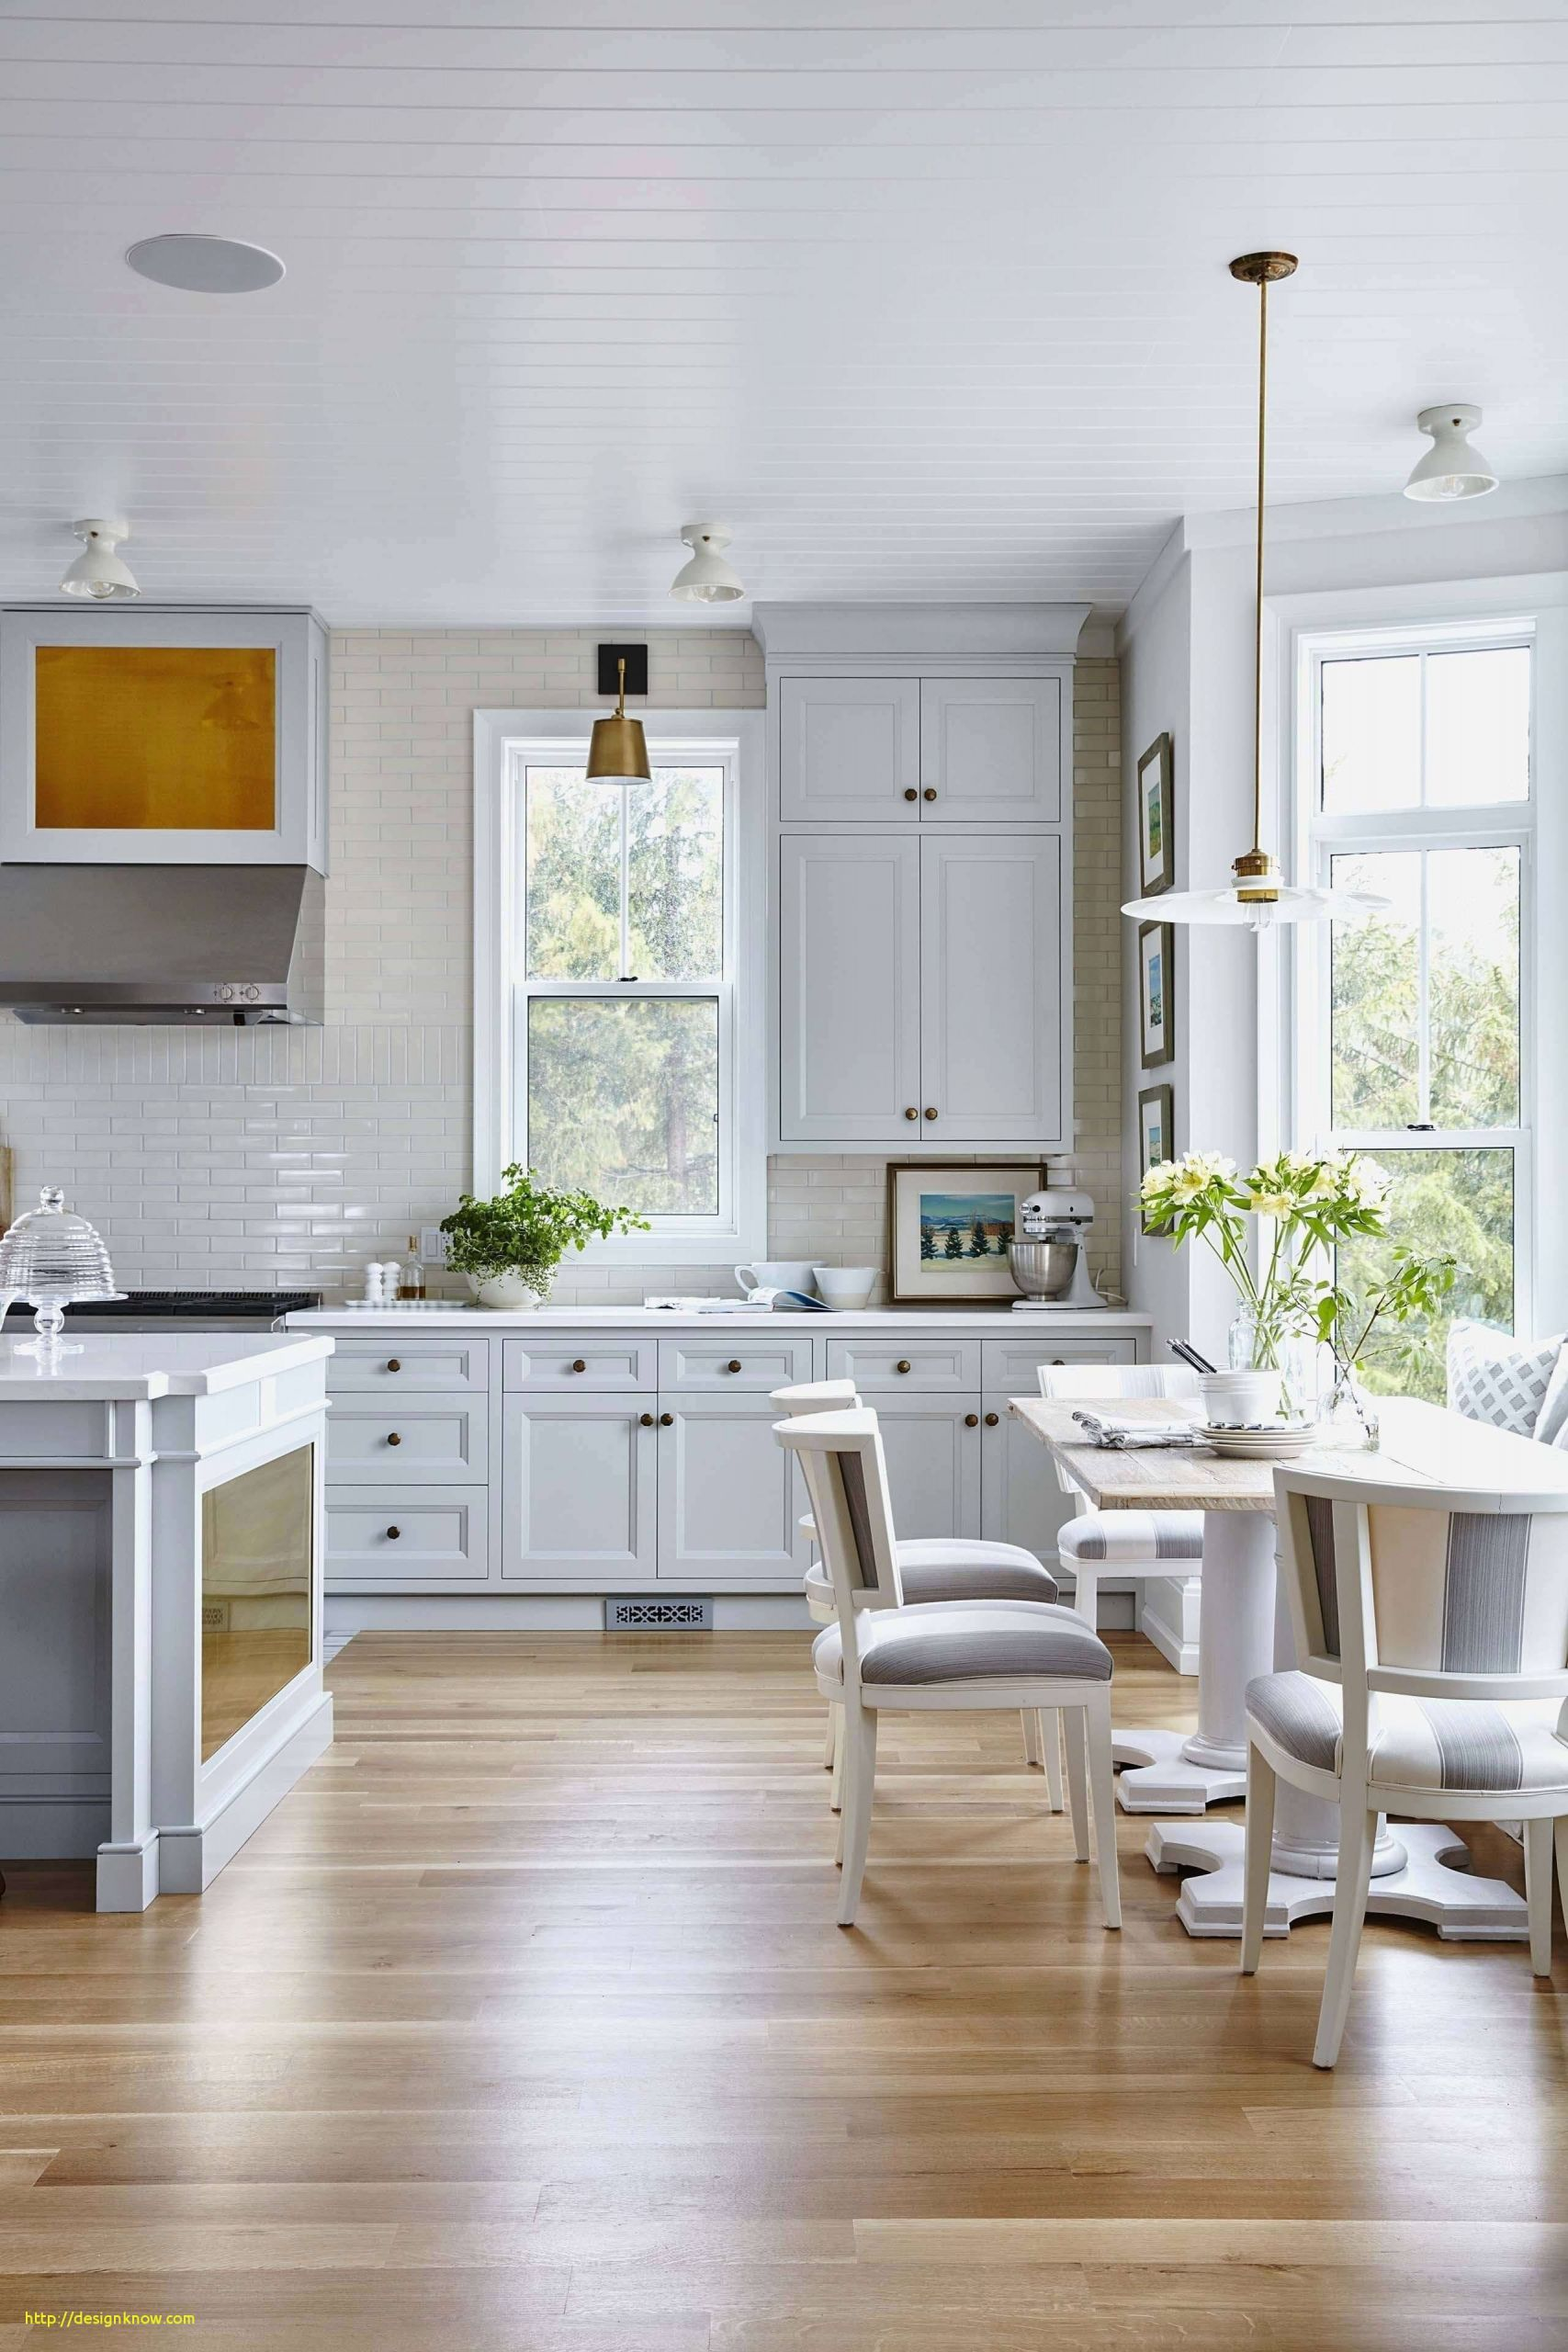 apt interior design ideas elegant small apartment awesome tiny apartment design luxury kitchen joys of apt interior design ideas